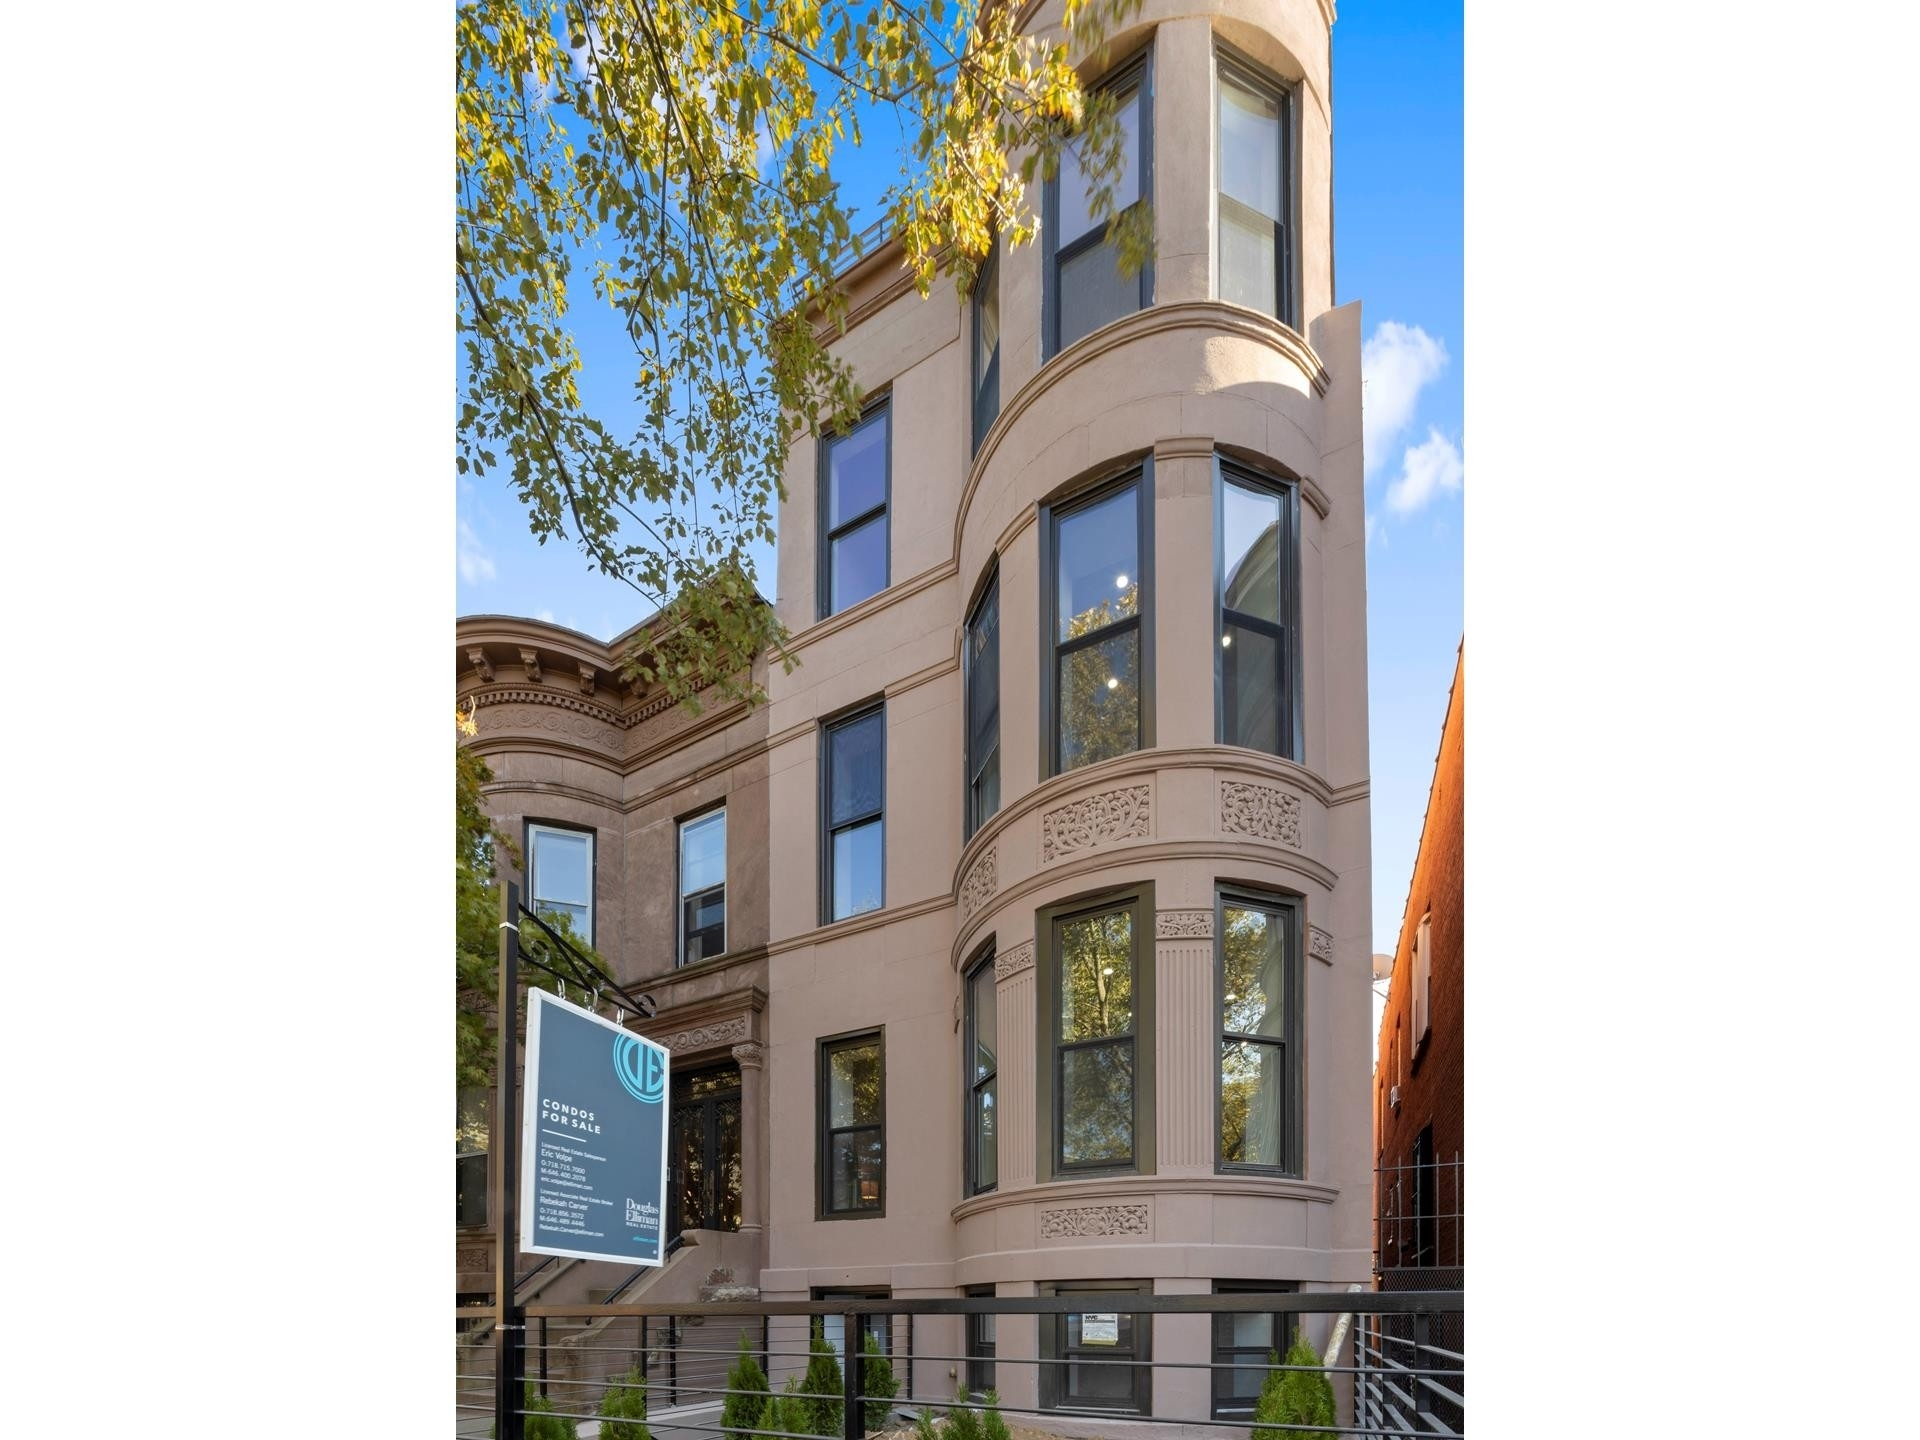 Condominium for Sale at 1090 Carroll St, 2R Crown Heights, Brooklyn, NY 11225